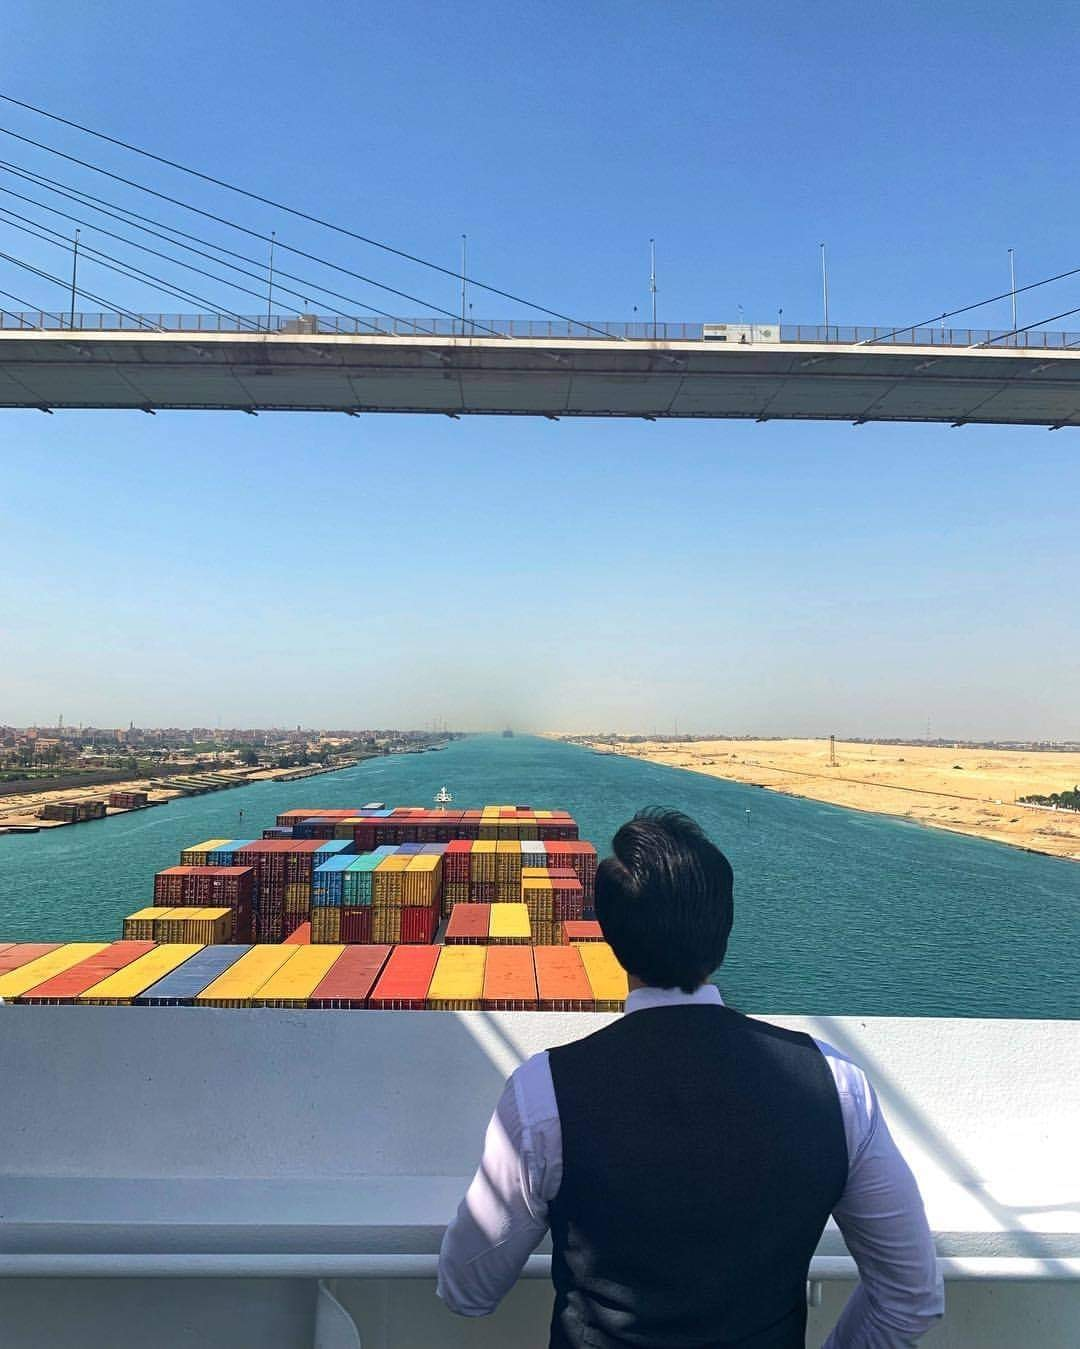 The joy of the crew of the Evergiven ship as it exits the Suez Canal